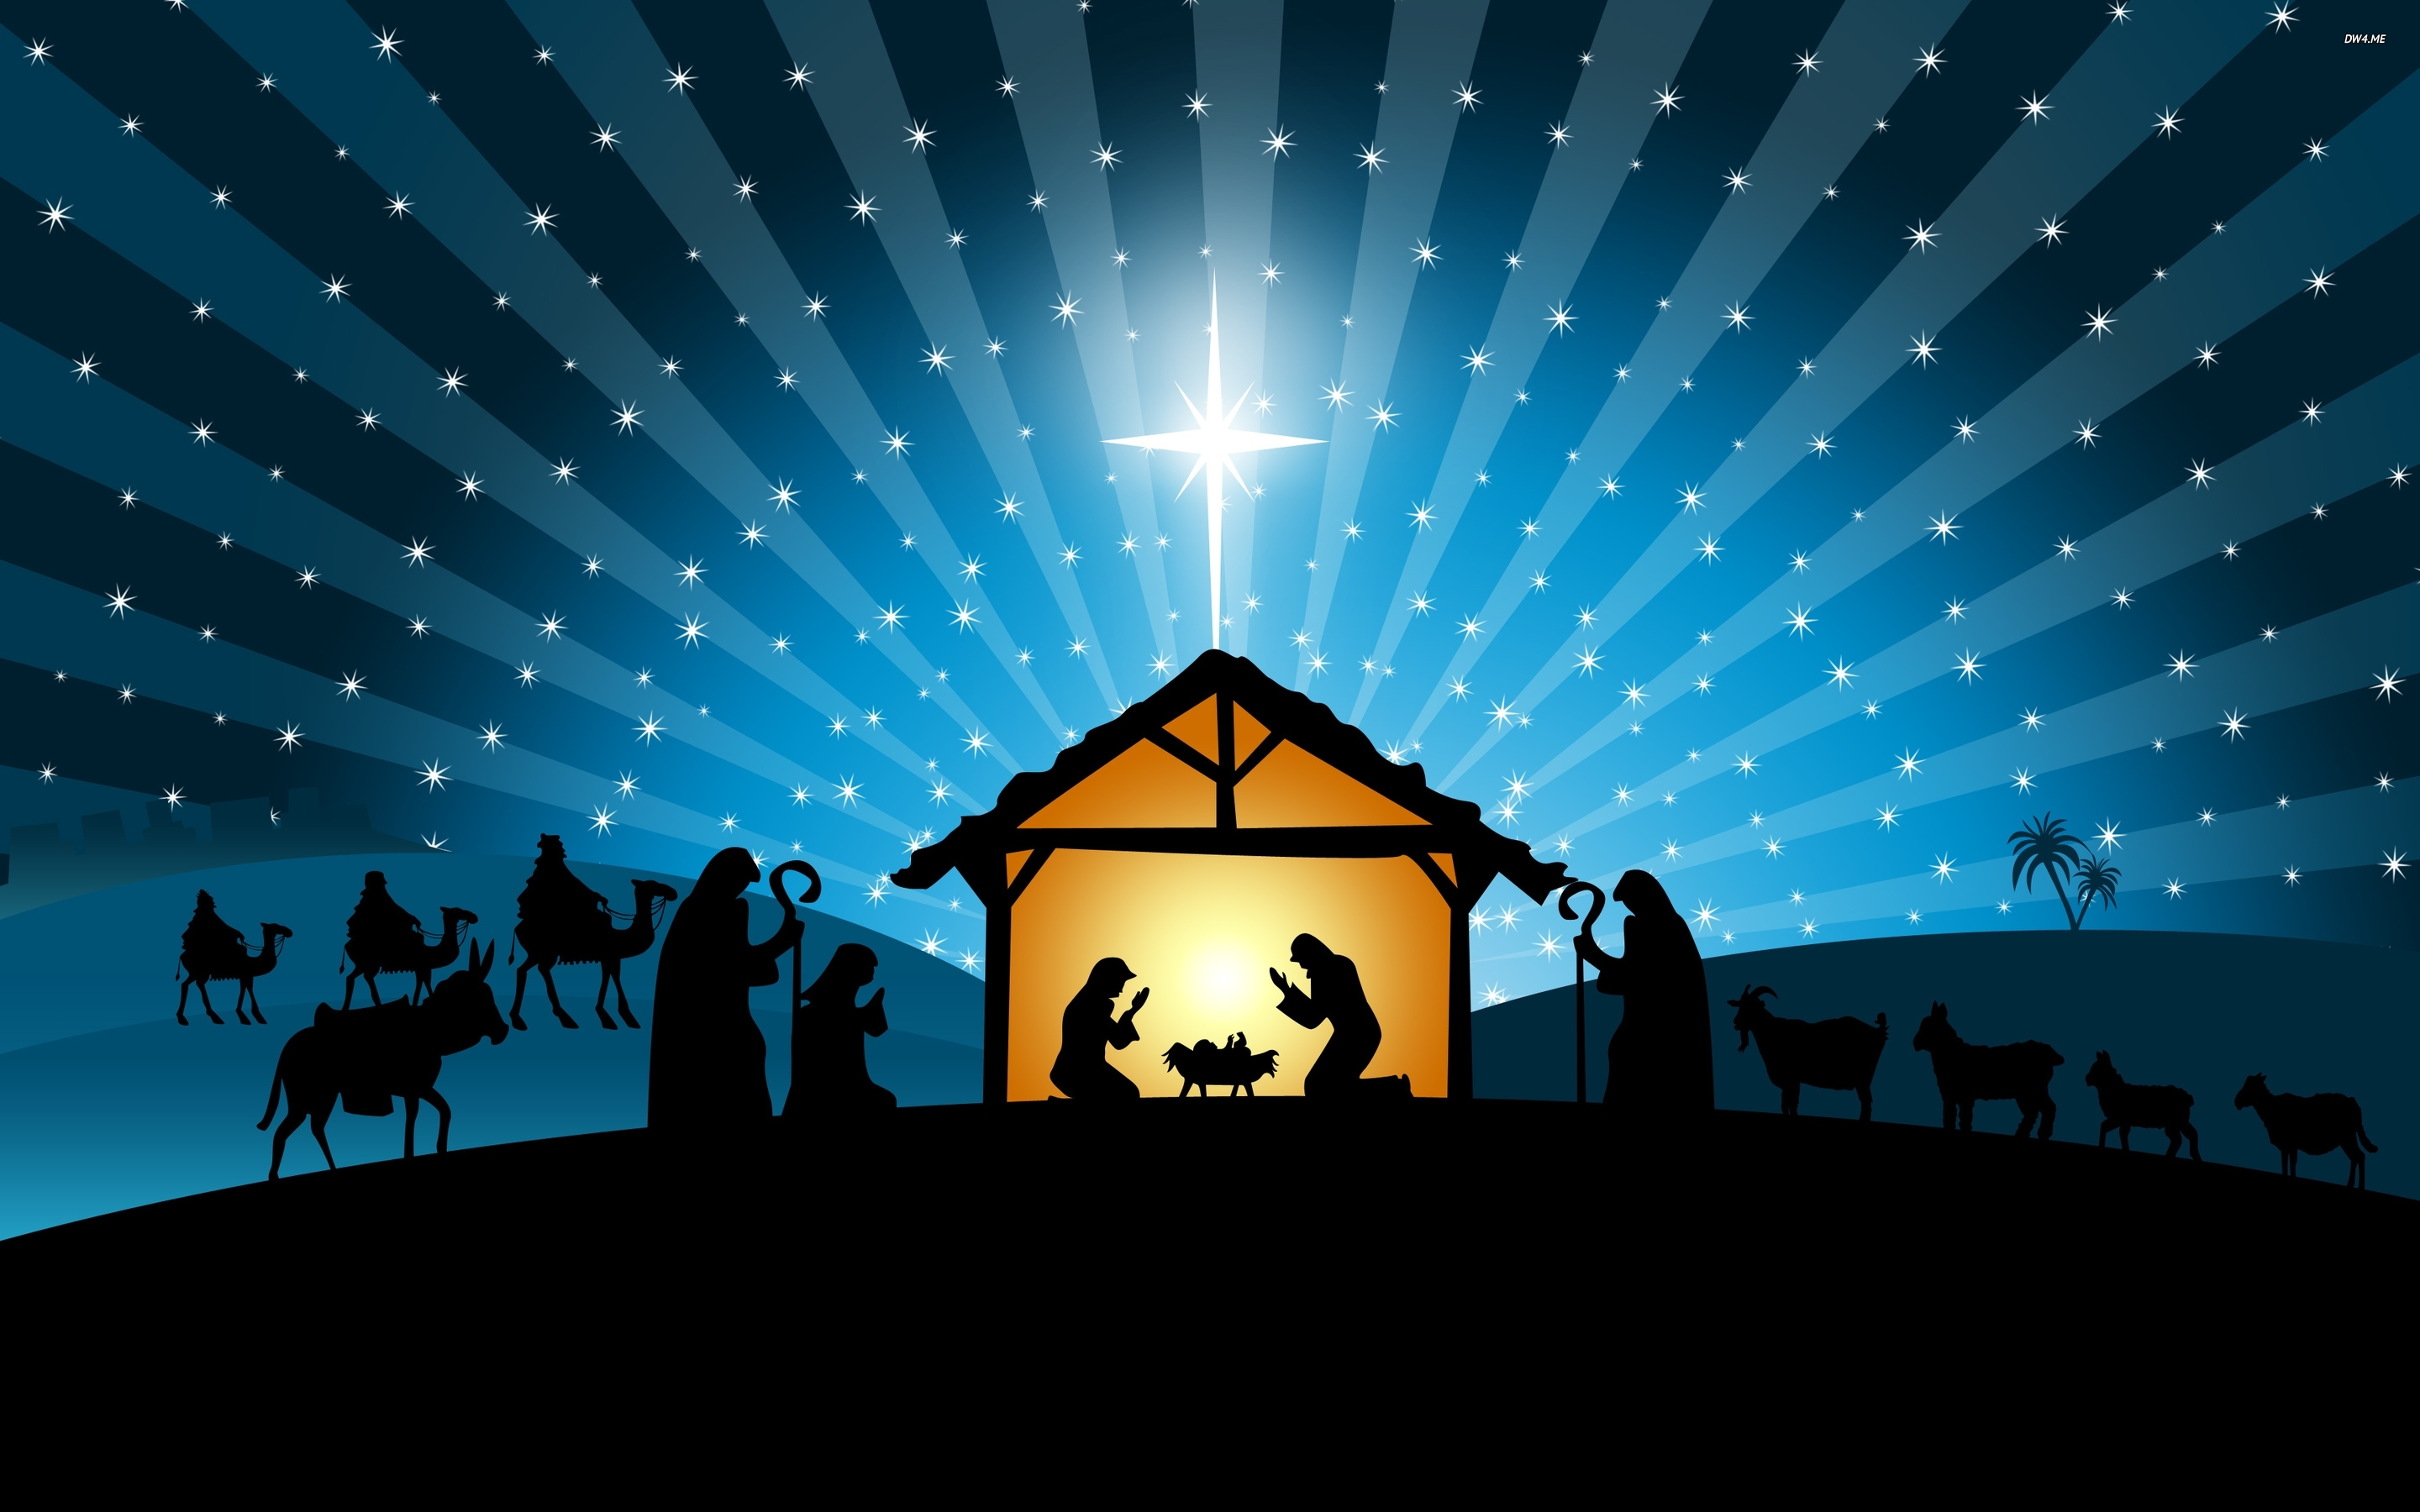 christmas nativity scene wallpaper - wallpapersafari | a very merry